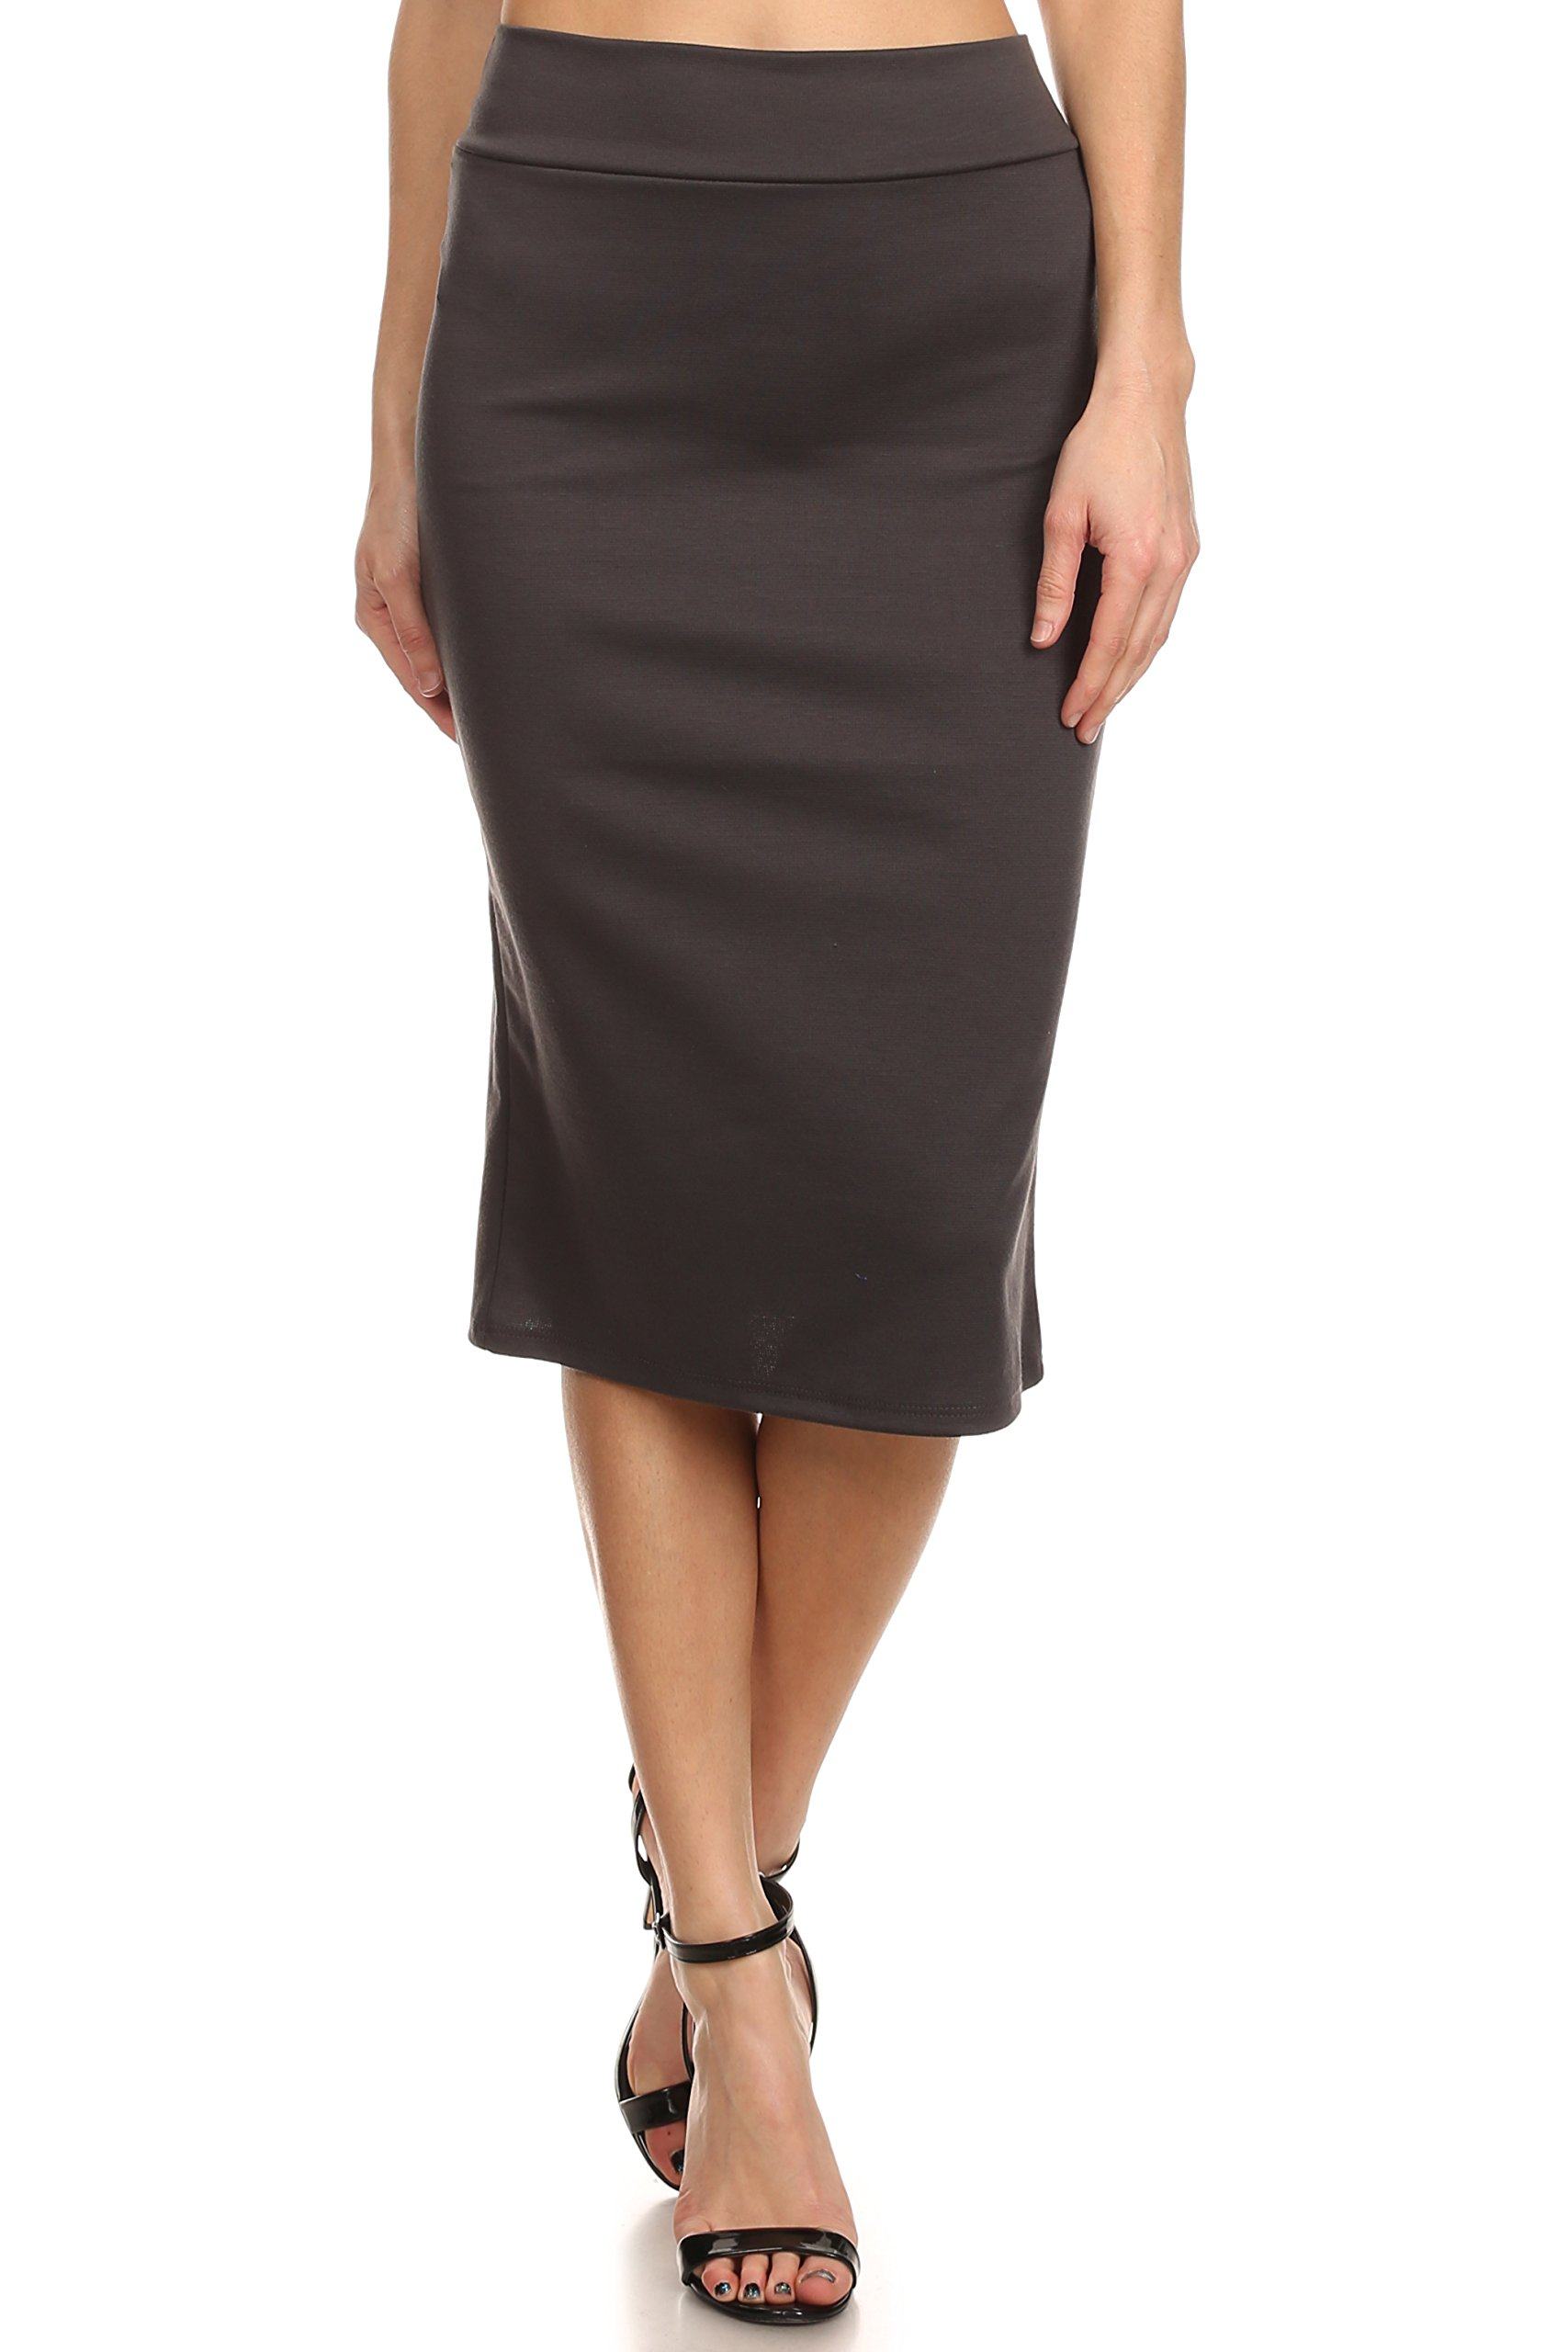 Simlu Women's Below the Knee Pencil Skirt for Office Wear - Made in USA ,Dark Grey ,Medium